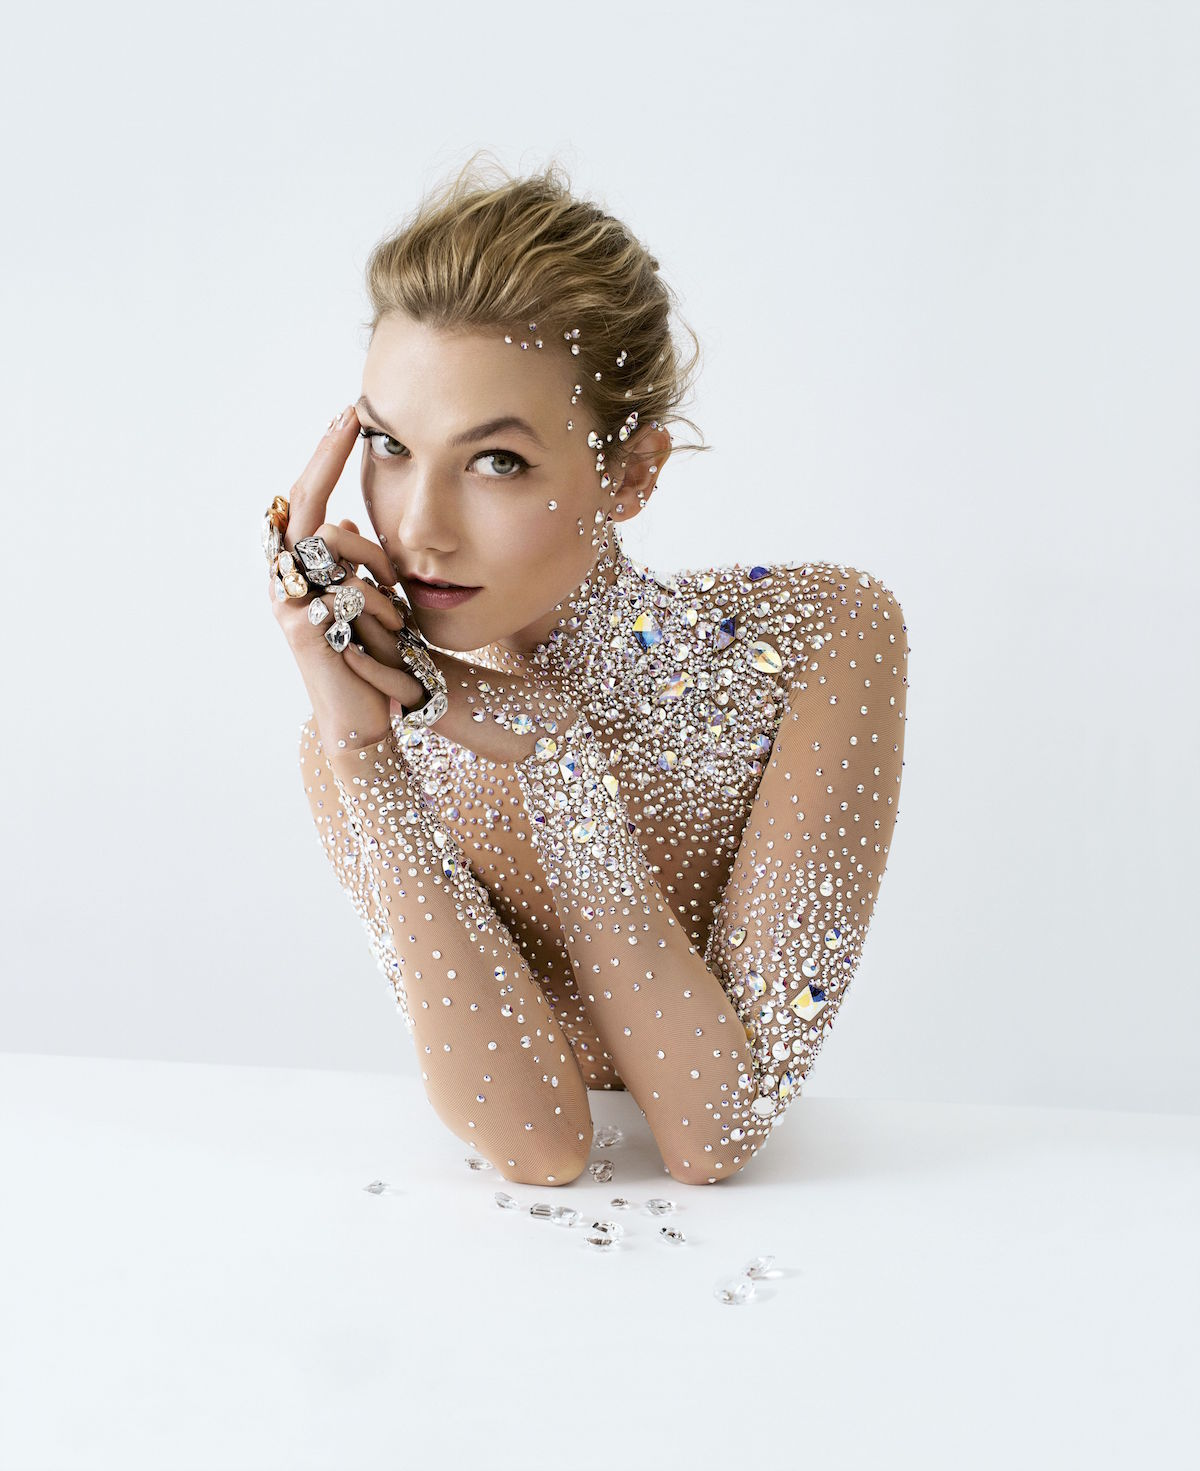 Karlie Kloss for the Brilliant Inspiration campaign